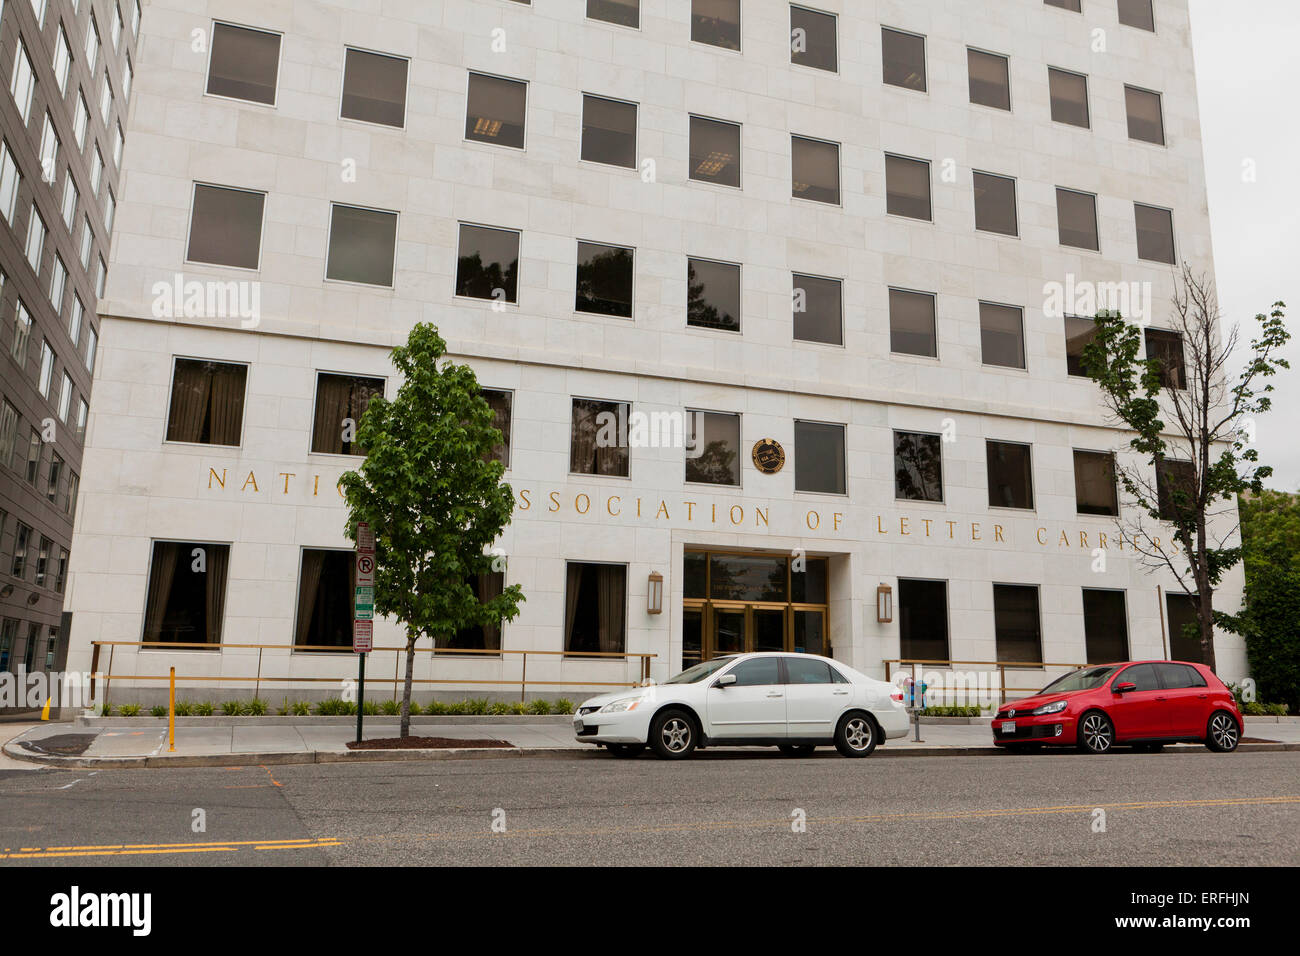 National Association of Letter Carriers headquarters - Washington, DC USA - Stock Image